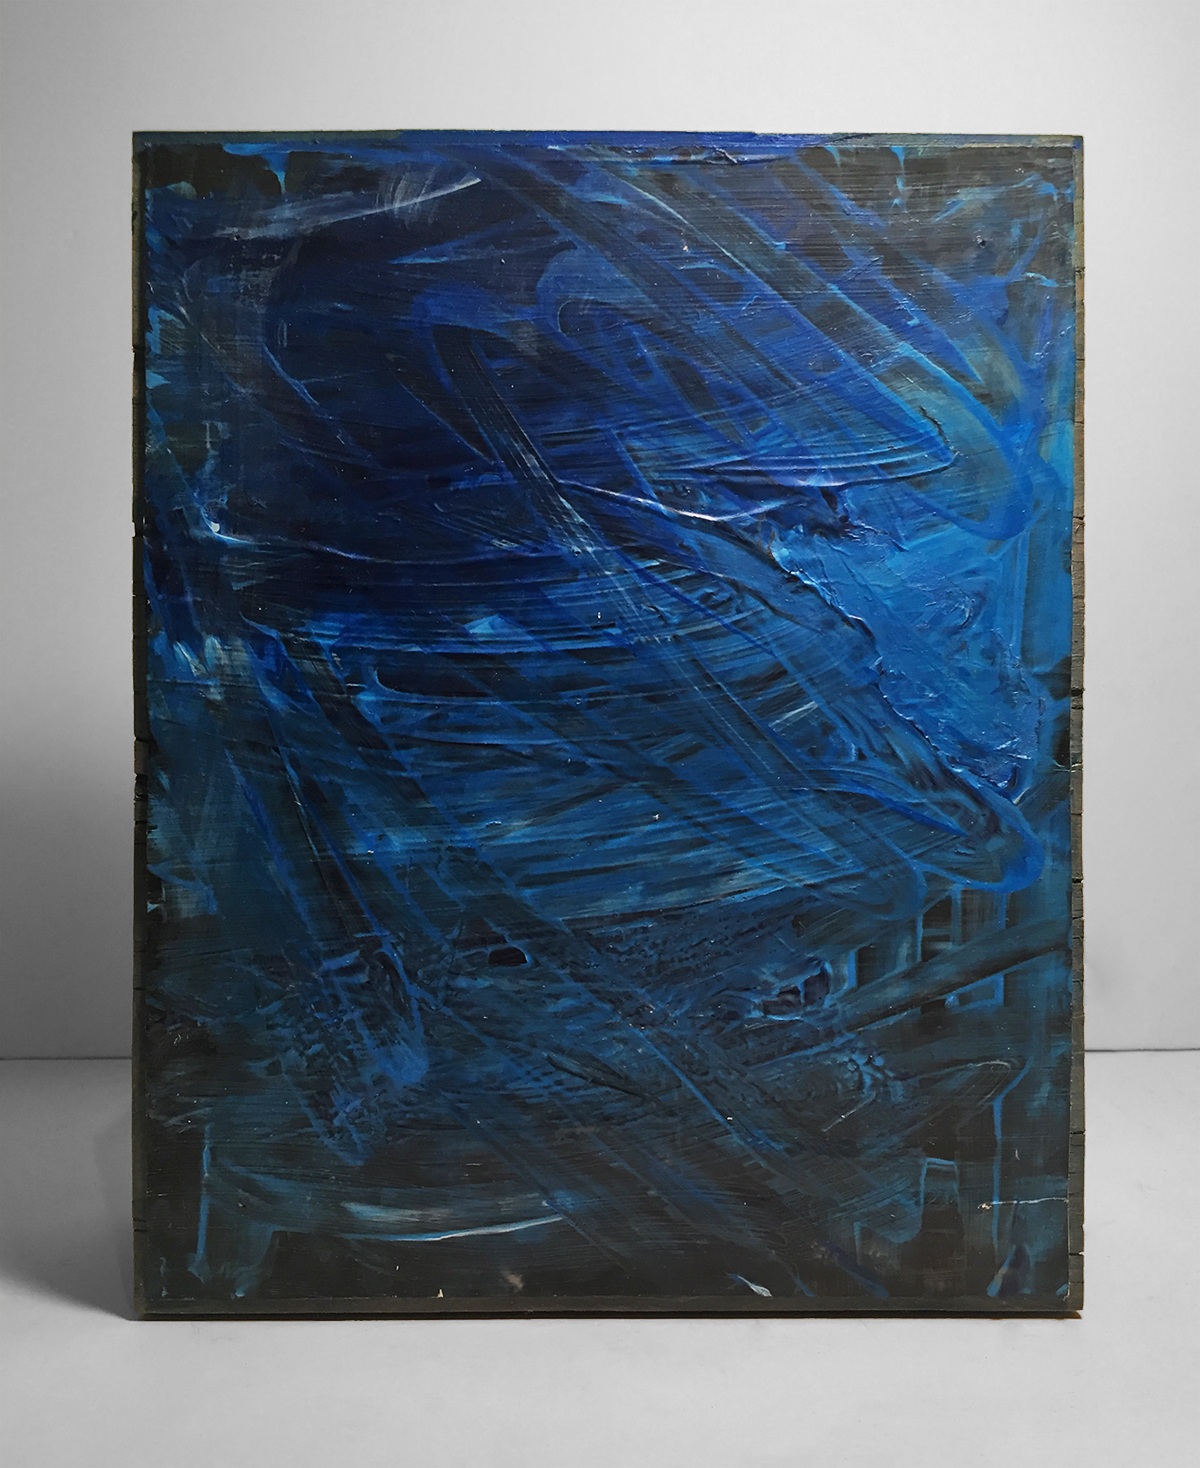 TANGLED BLUE   Acrylic, wood  10 x 8 Inches